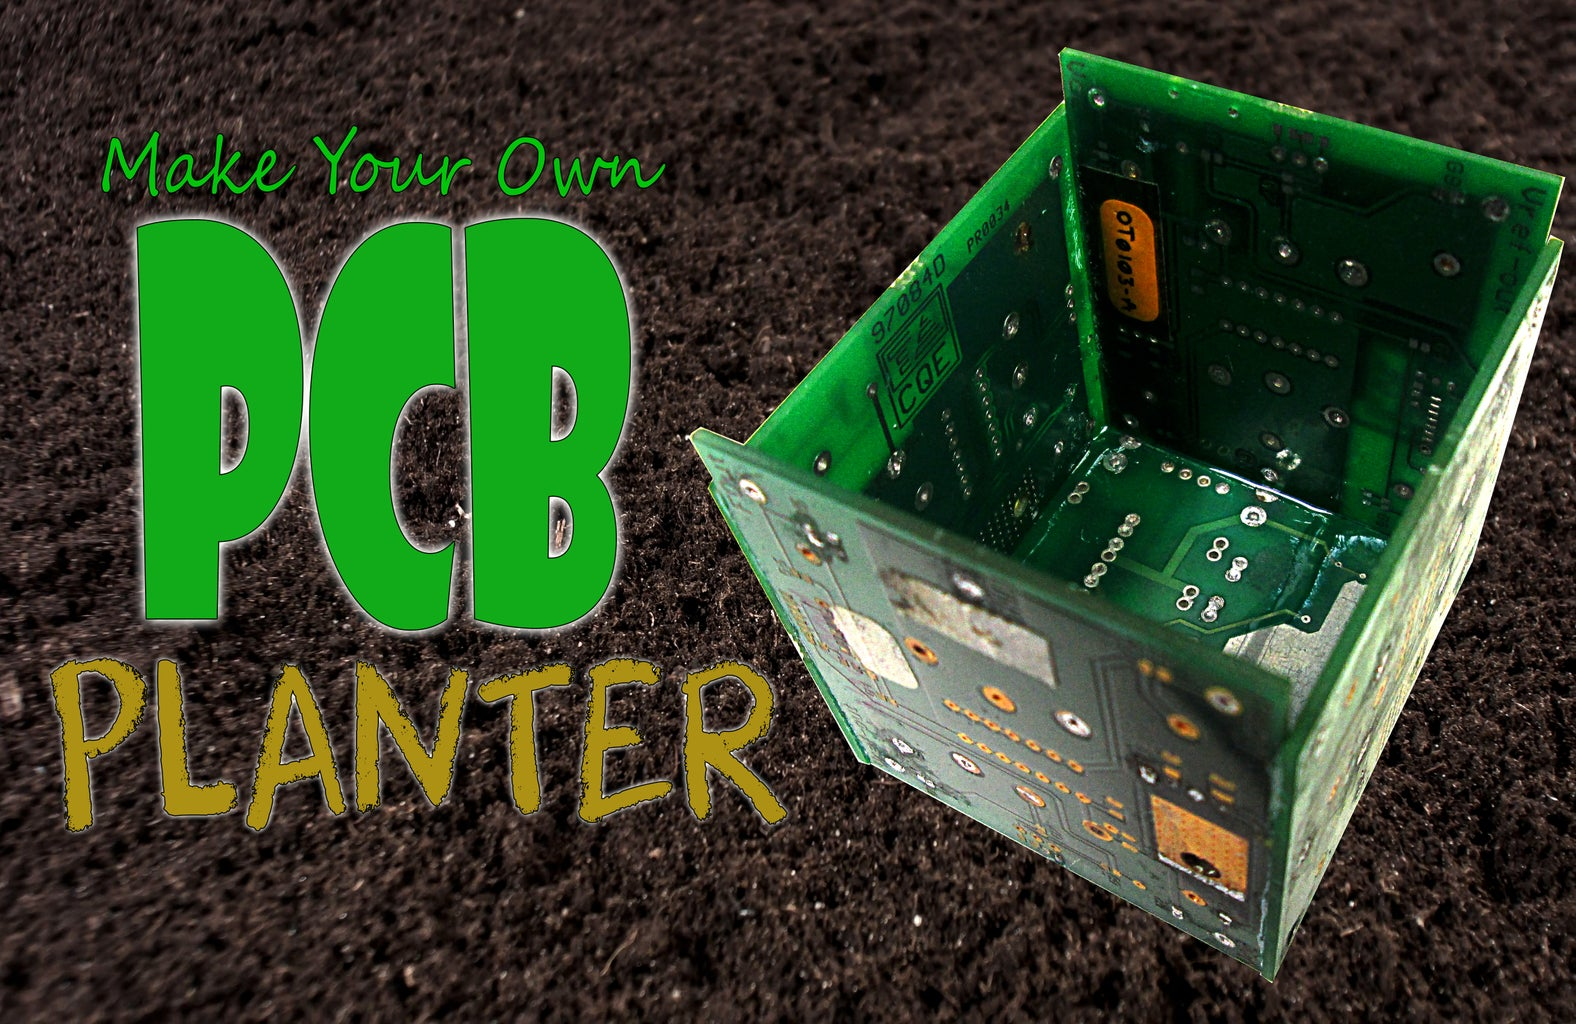 Make Your Own PCB PLANTER